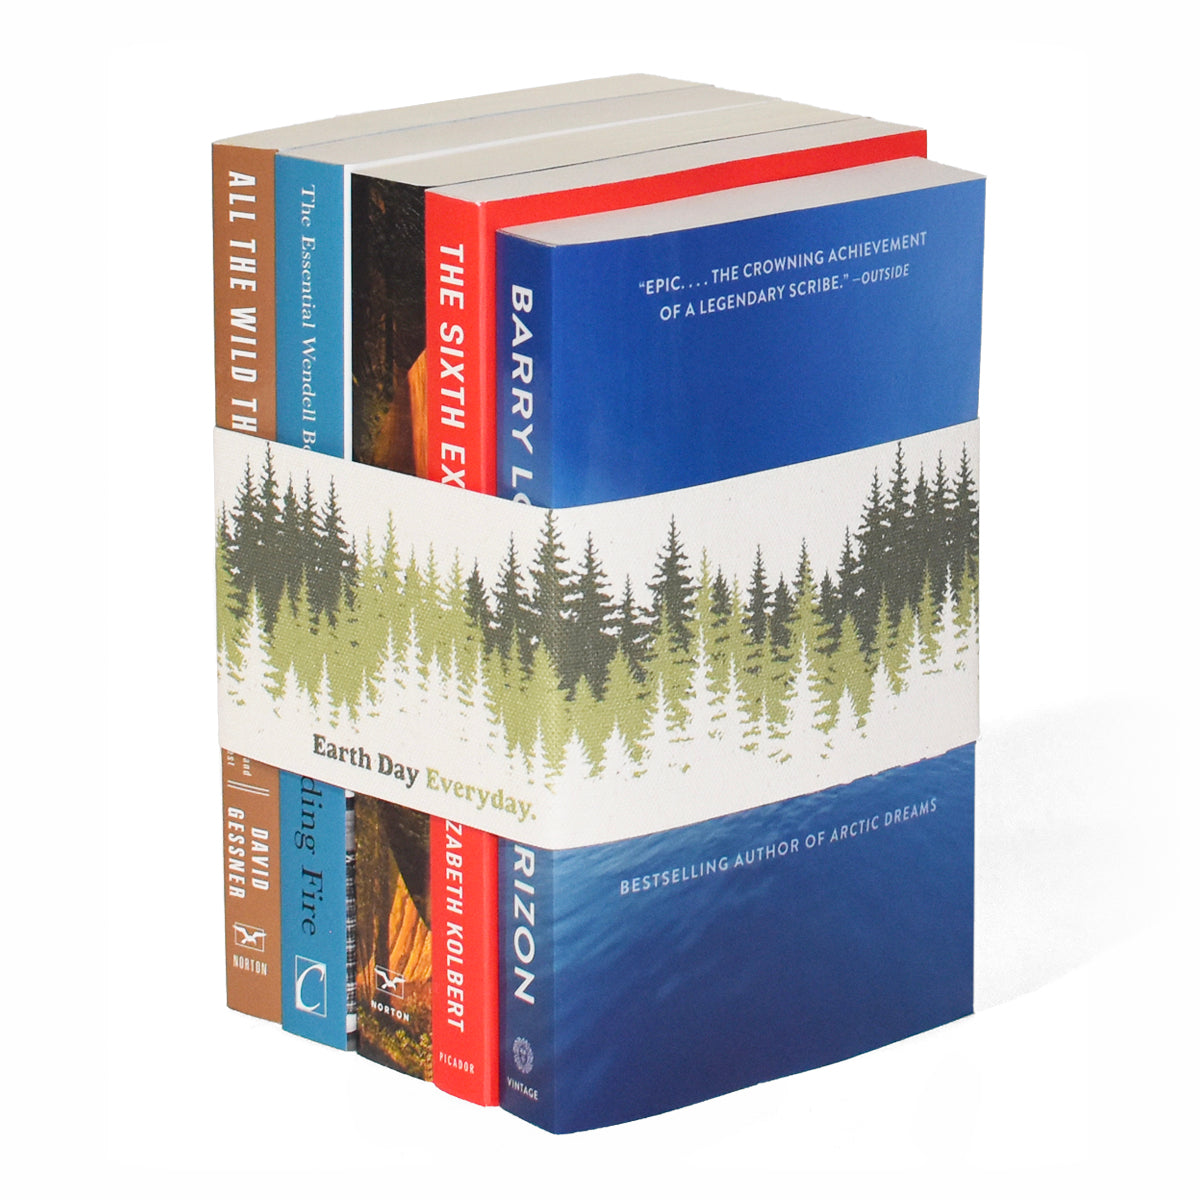 Earth Day Everyday Book Set